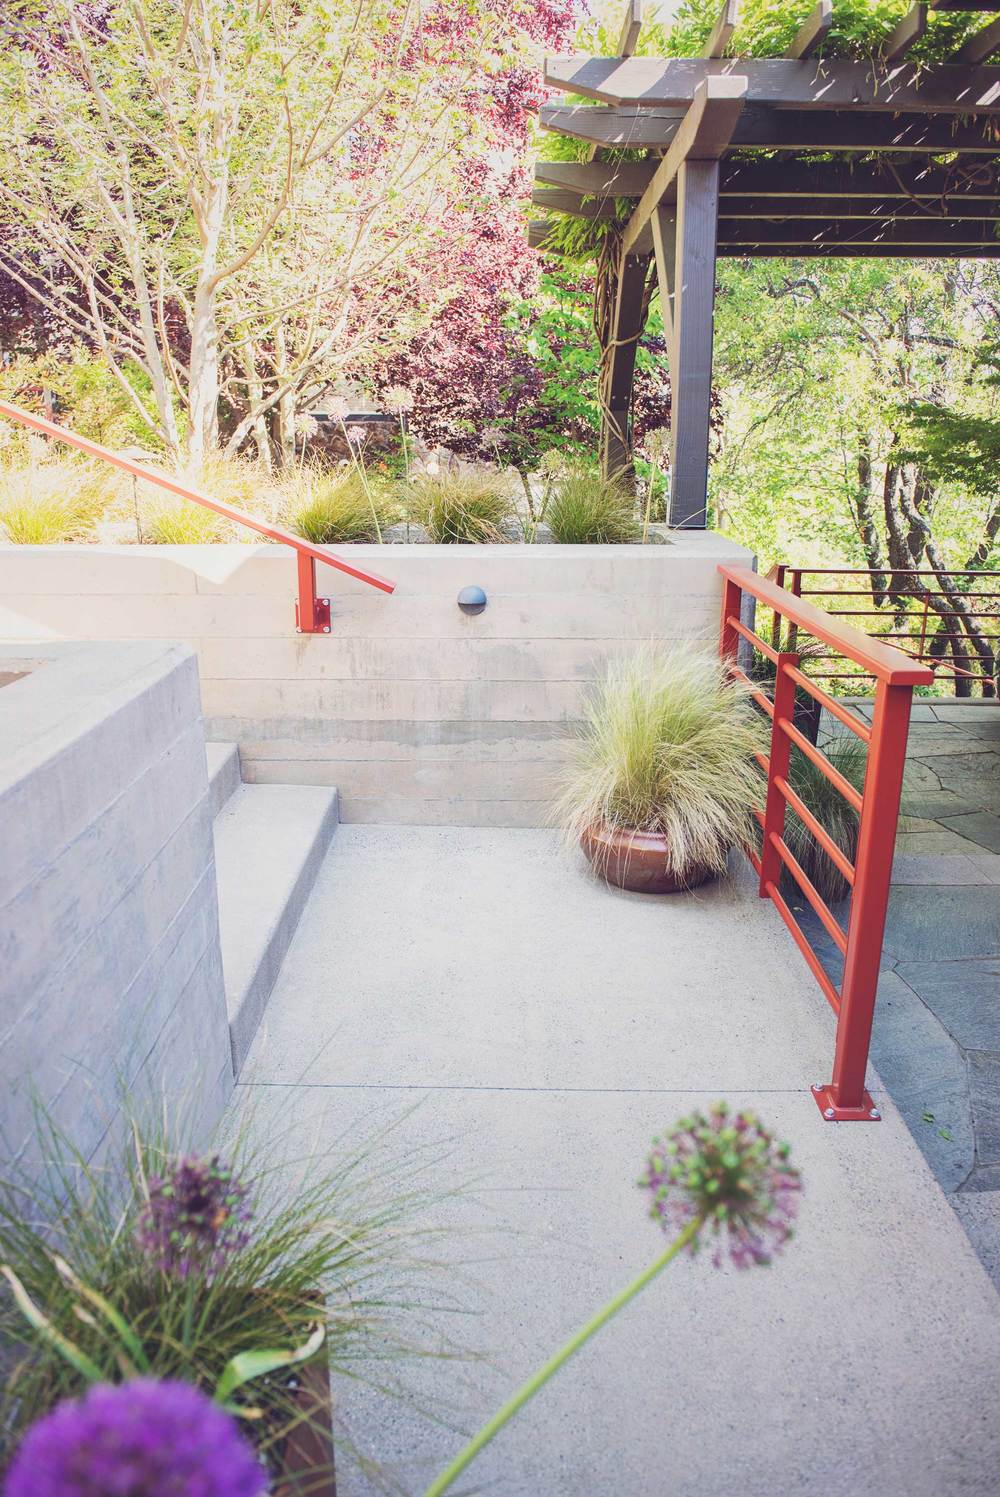 Board-Formed Concrete Retaining Wall Design and Modern Steel Railings at an Ashland Home.jpg